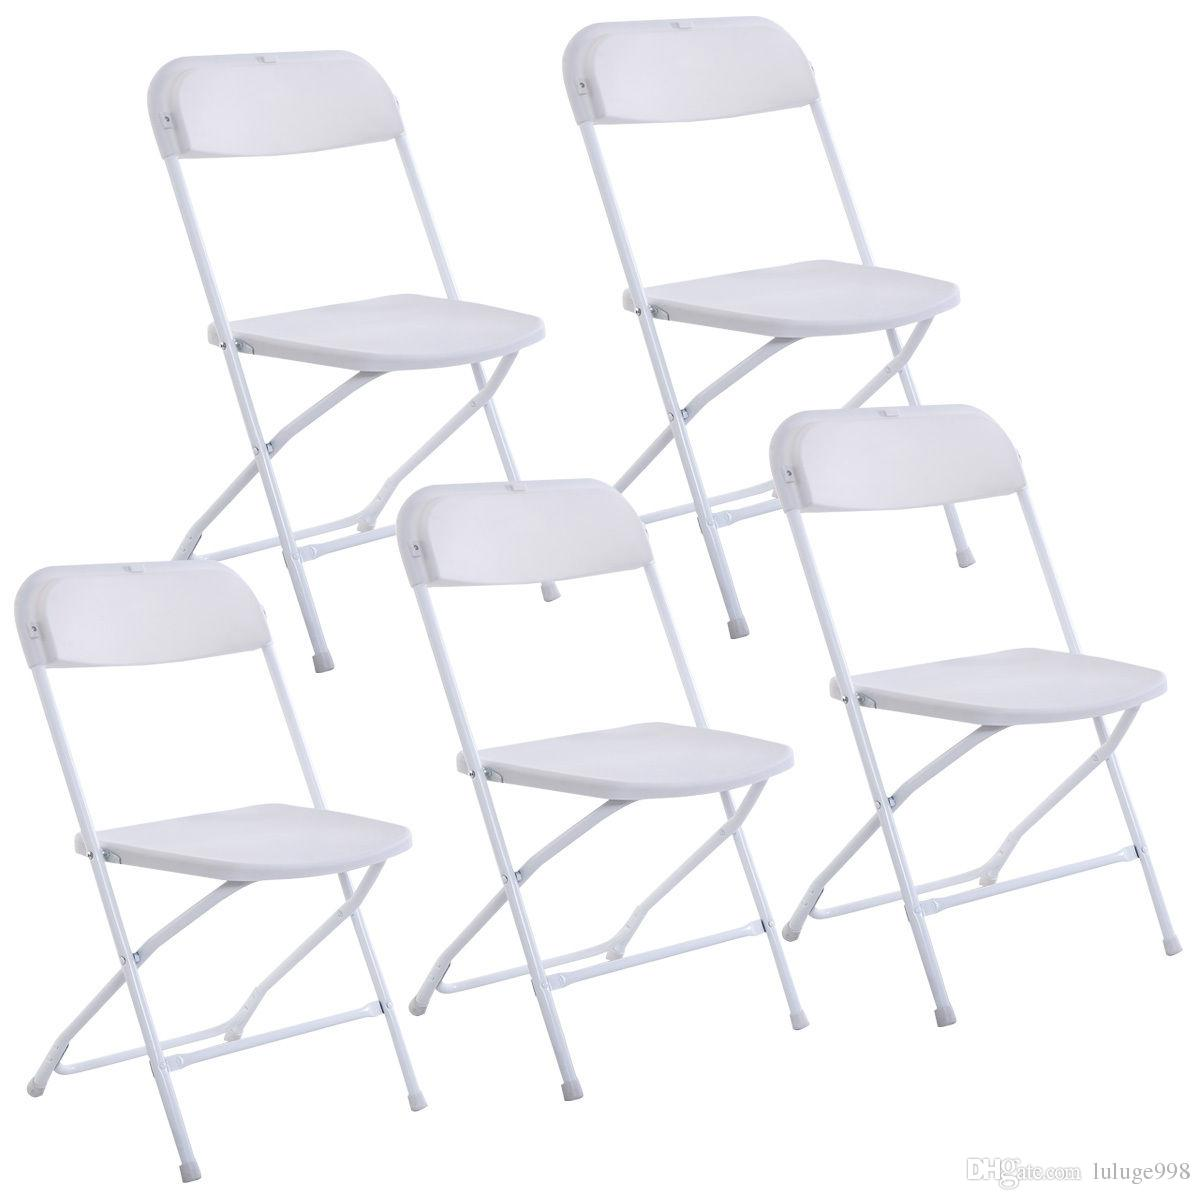 2021 New Set Of 5 Plastic Folding Chairs Wedding Party Event Chair Commercial White From Luluge998 46 73 Dhgate Com